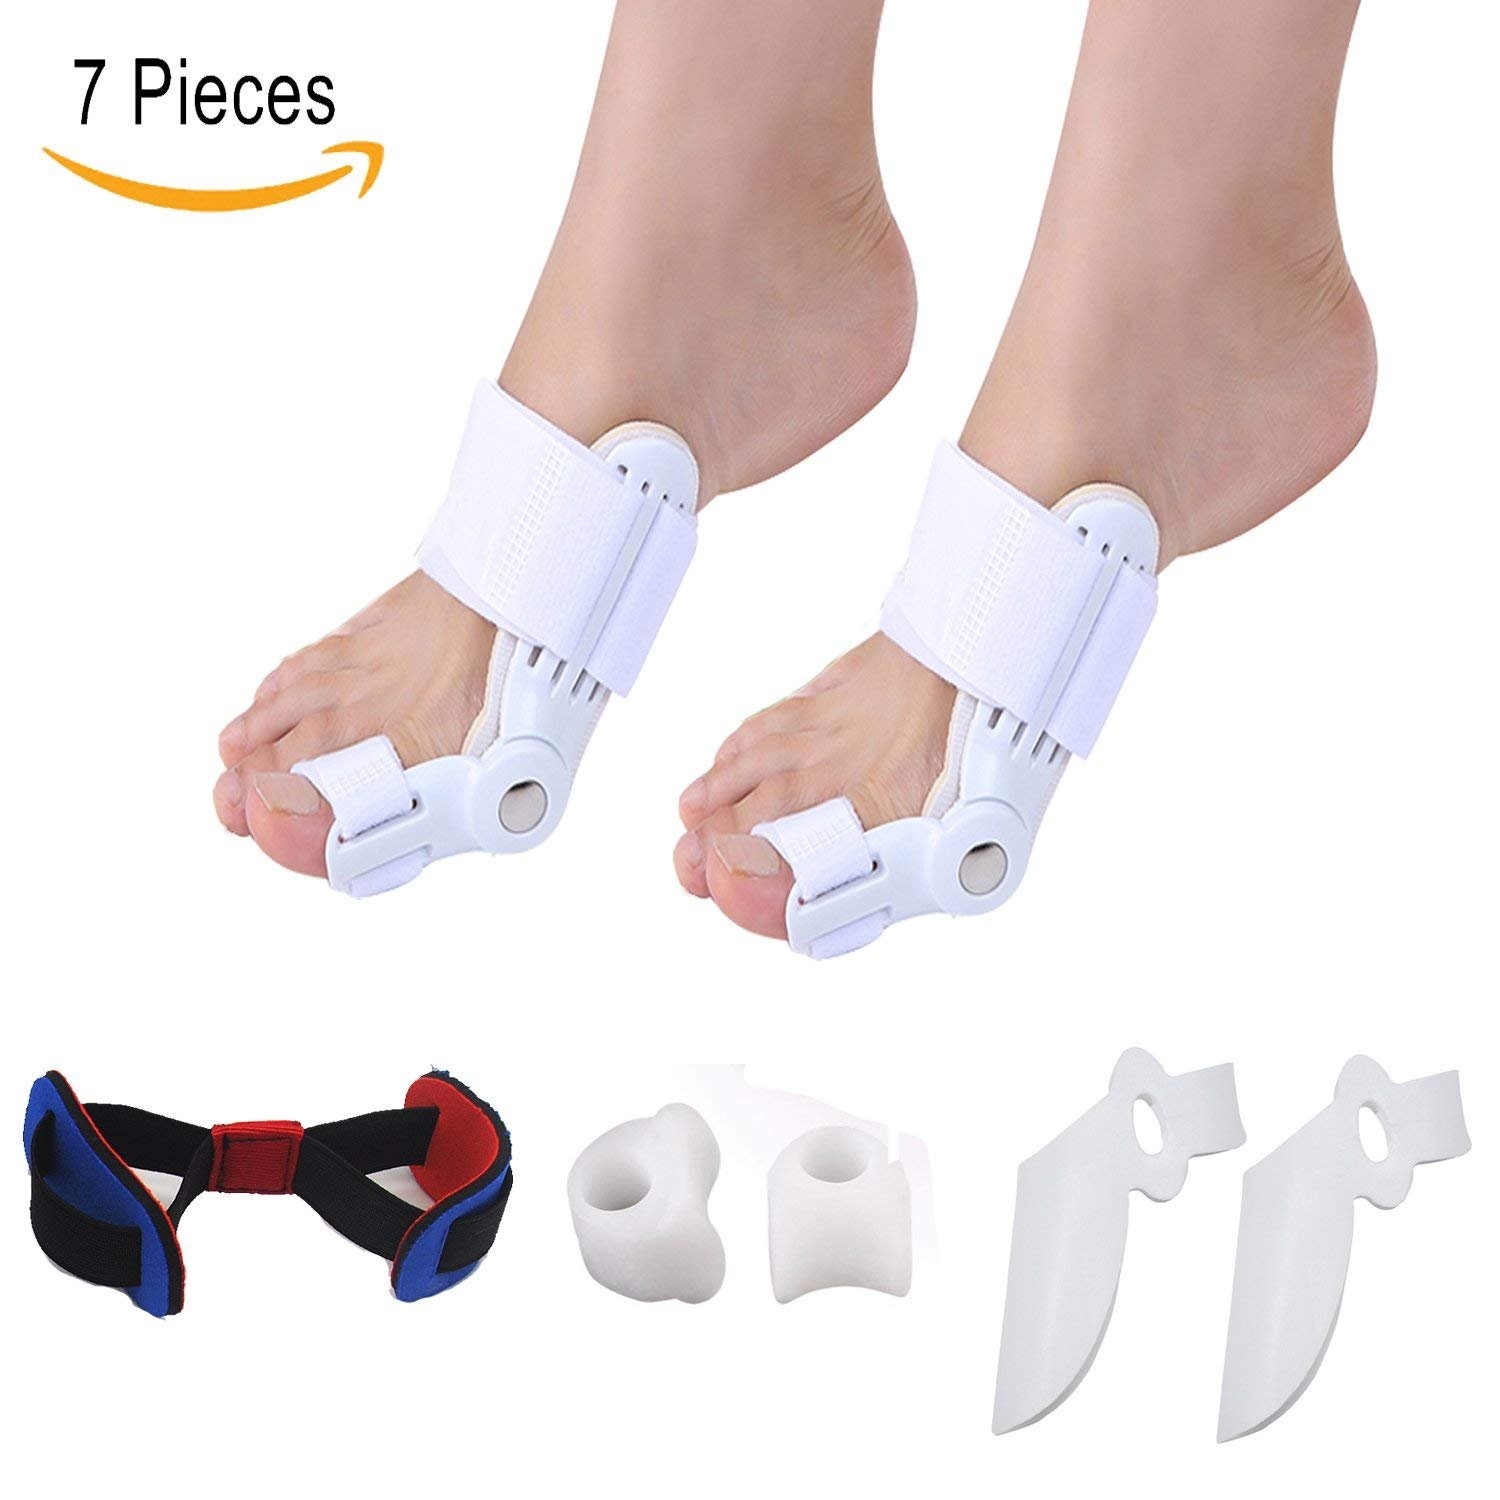 Bunion Corrector Splint Relief Protector kit -Carikaien 7 PCS Toe Spacers Straighteners Splint Aid Surgery Treatment in Hallux Valgus Overlapping Toe Separation Hammer Toe by Carikaien